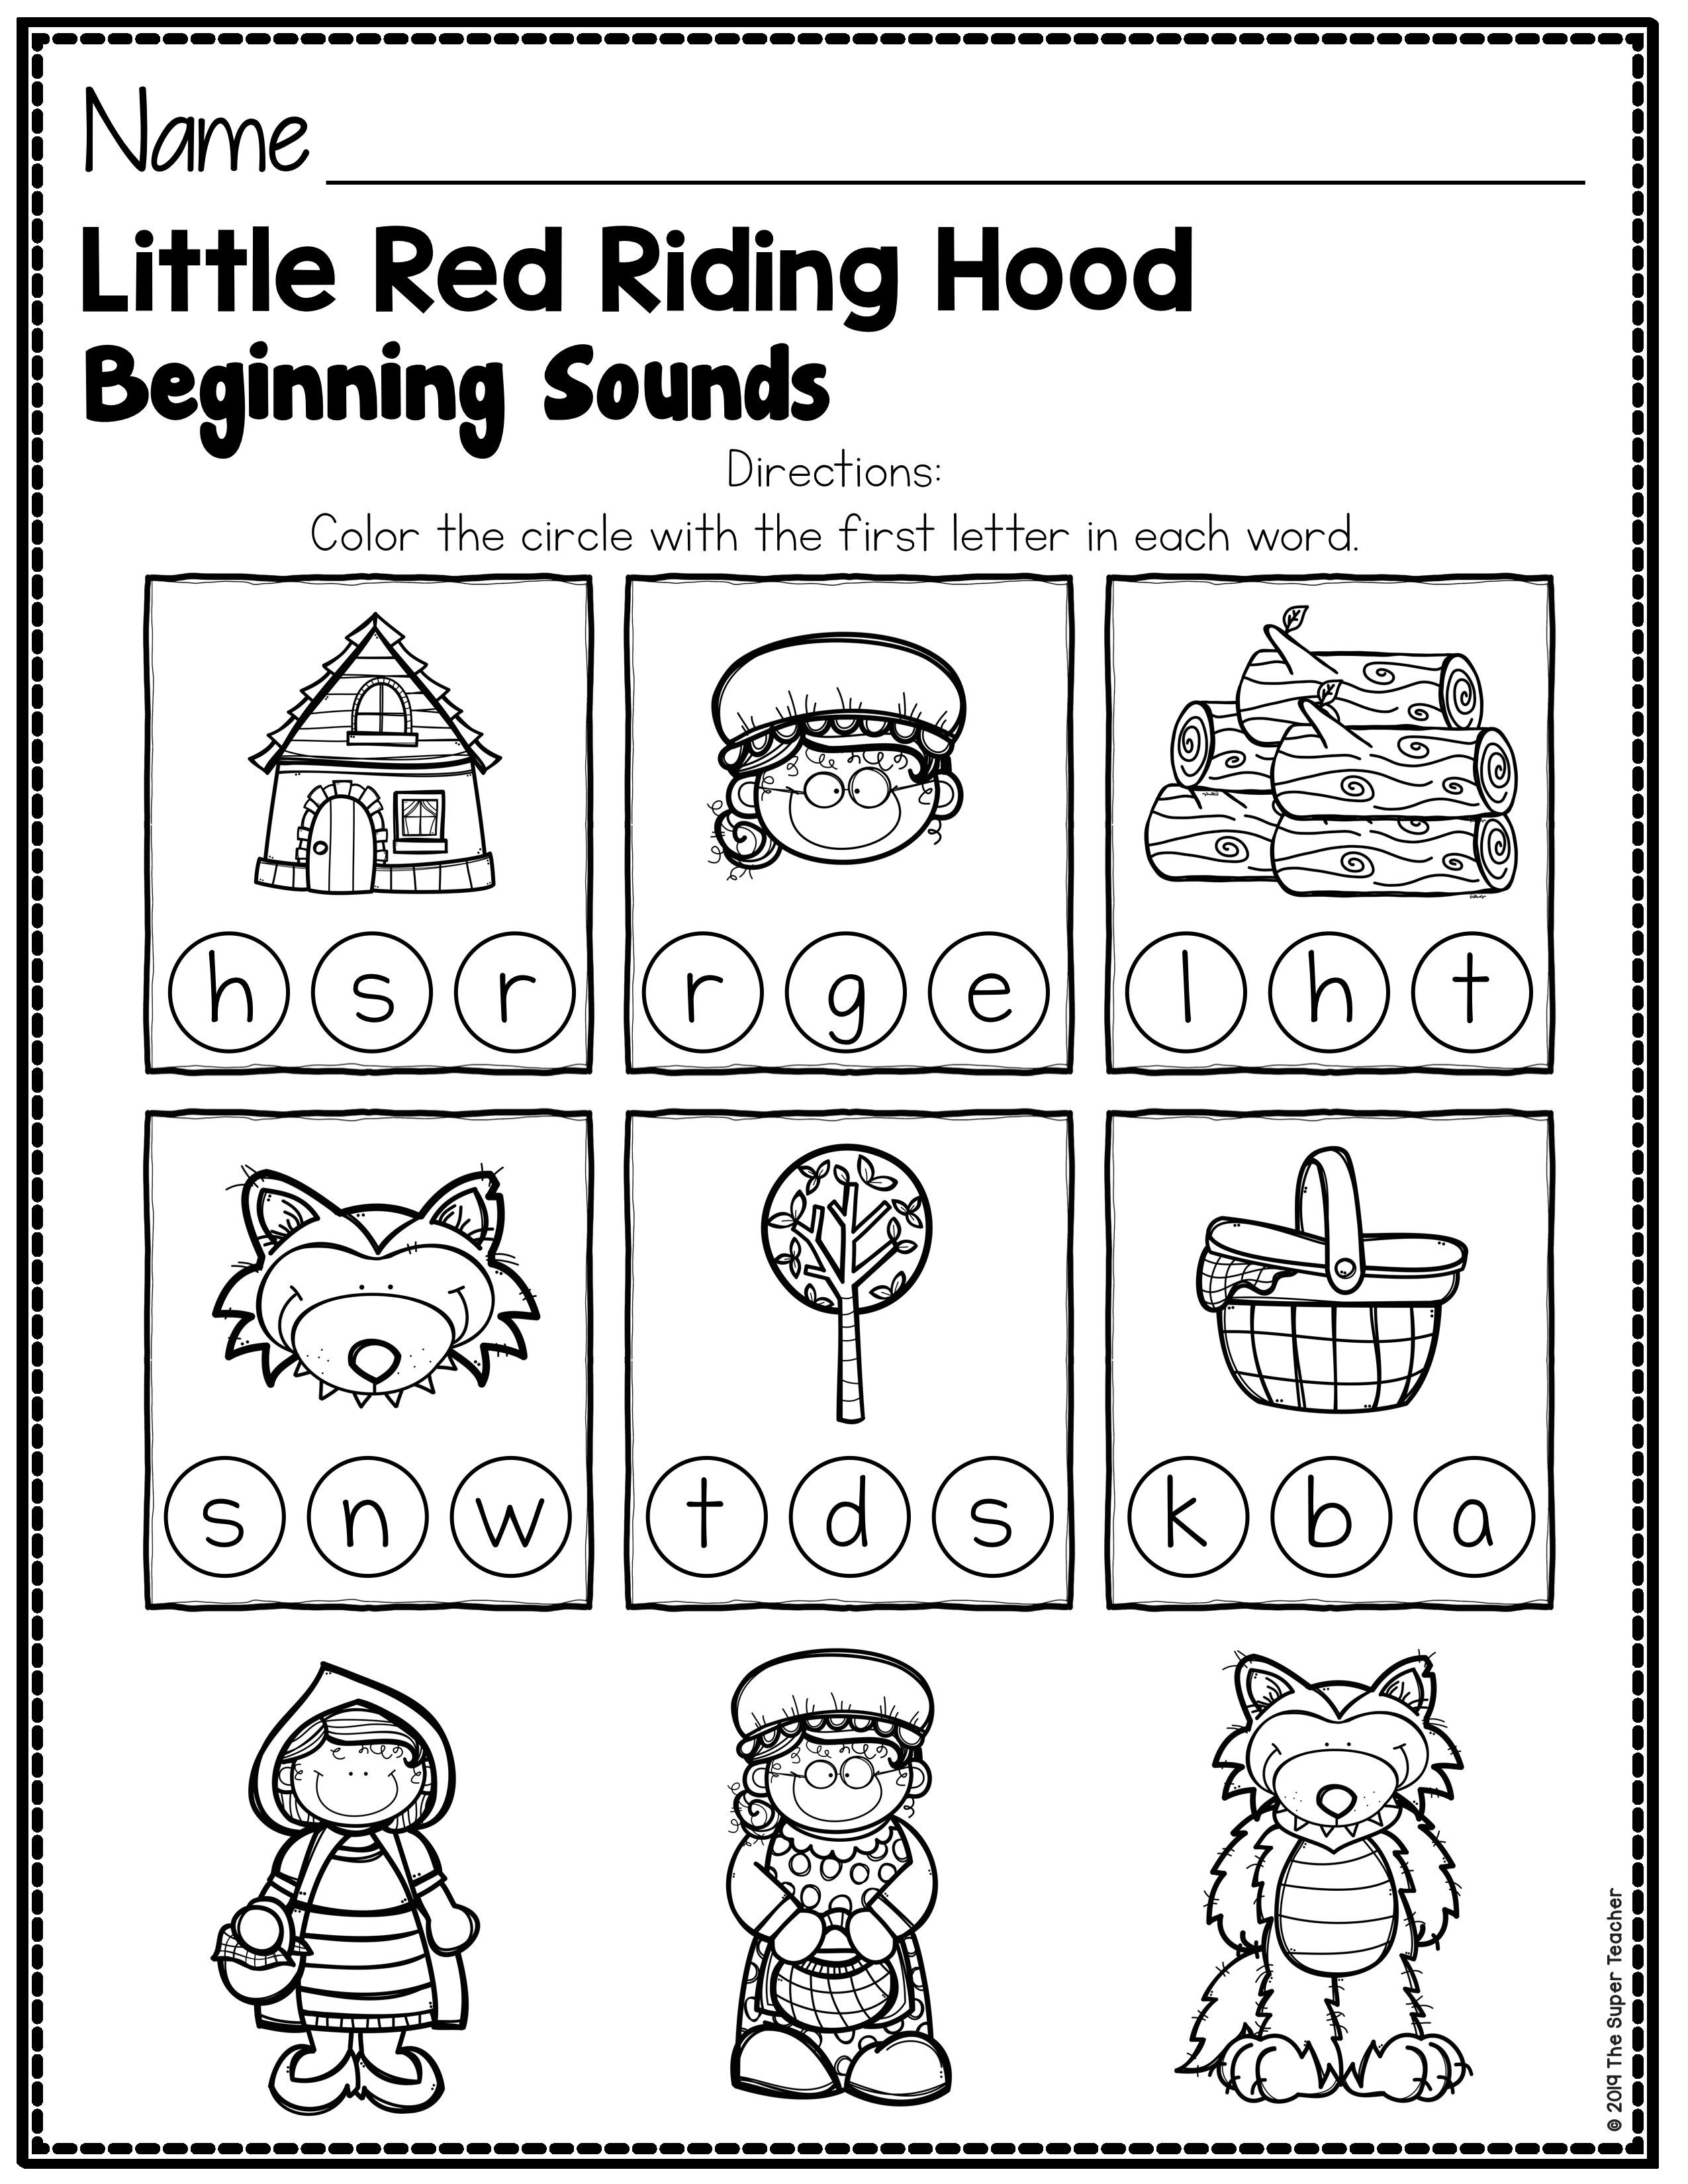 1st Grade Phonics Worksheets - All About Worksheet   Little red riding  hood [ 3300 x 2550 Pixel ]